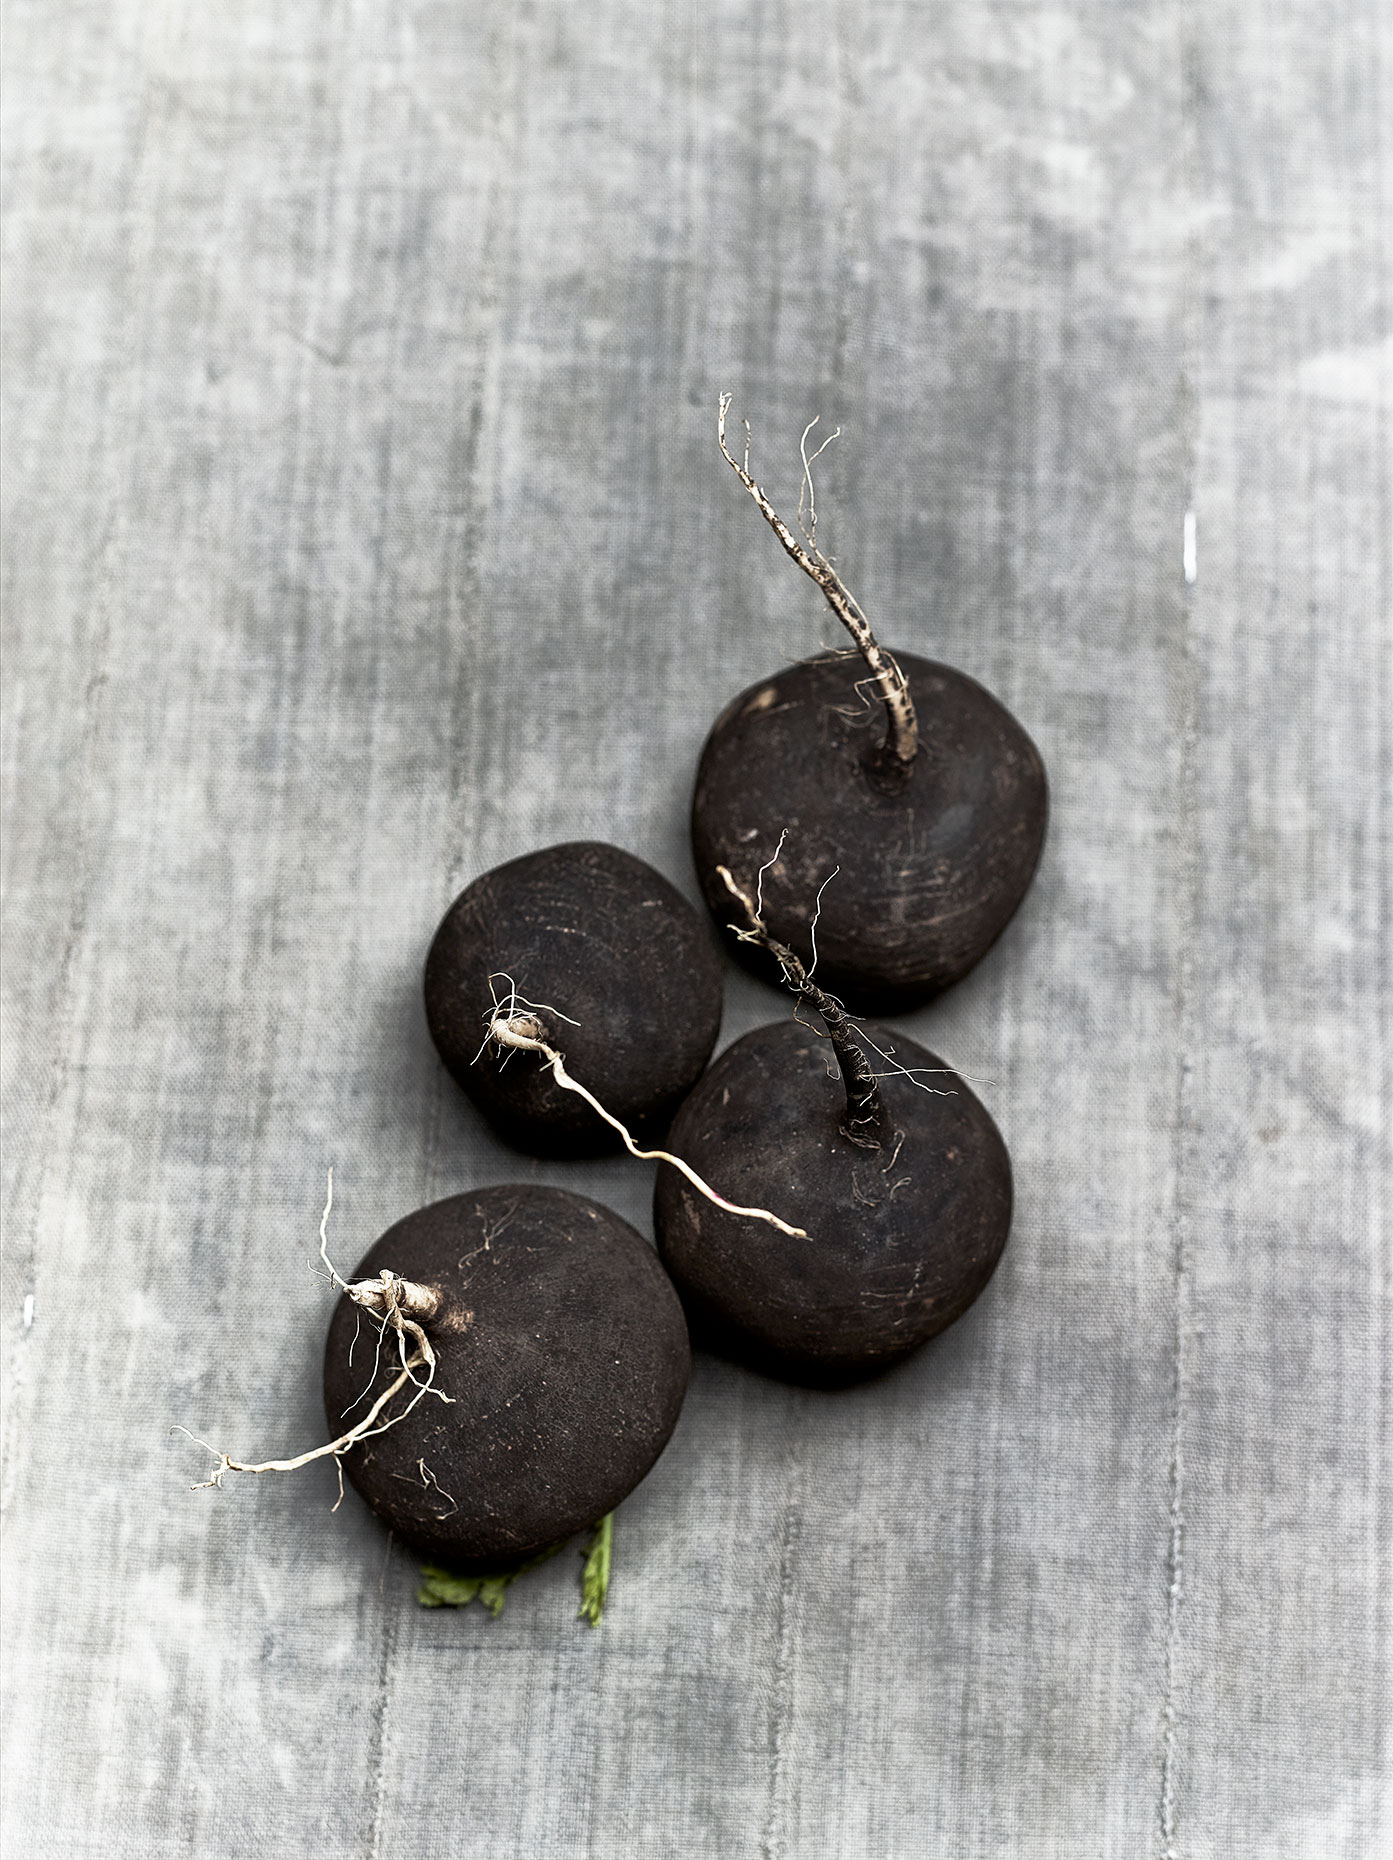 Veg_Test_Blk_Radish_SOFT_11_2015_6876_Flat_FINAL_1